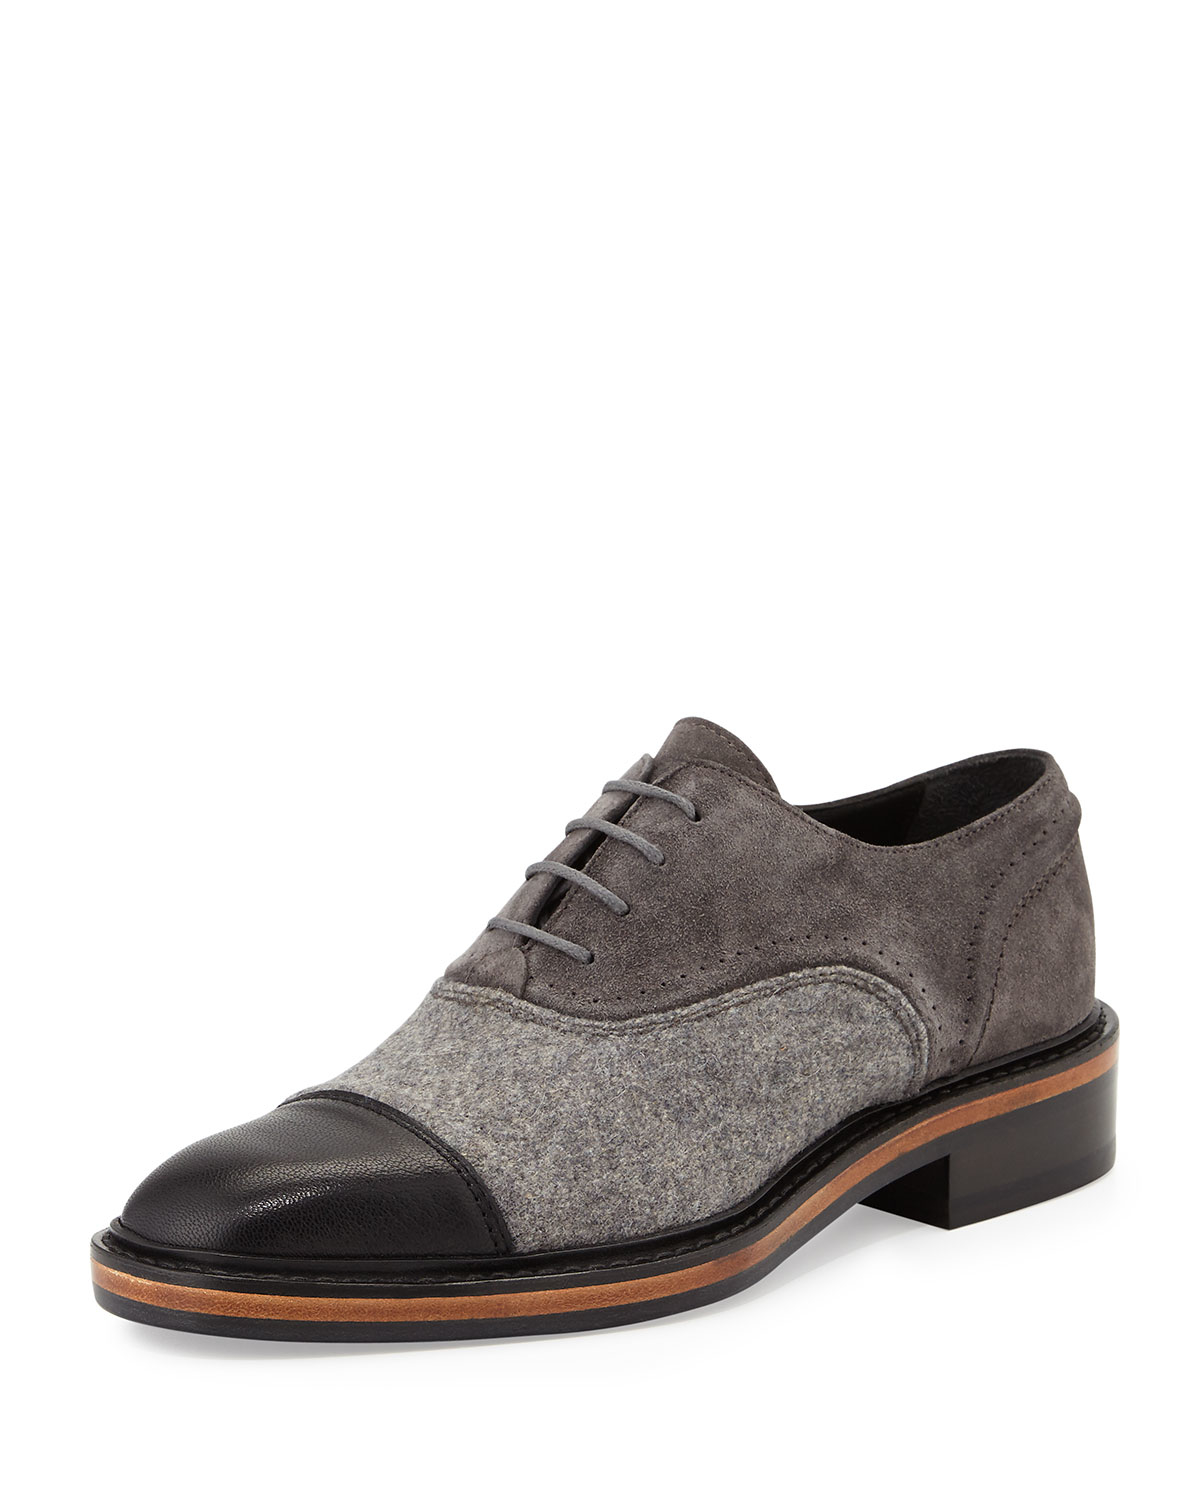 Lanvin Leather, Felt and Suede Oxford Shoes in Gray | Lyst